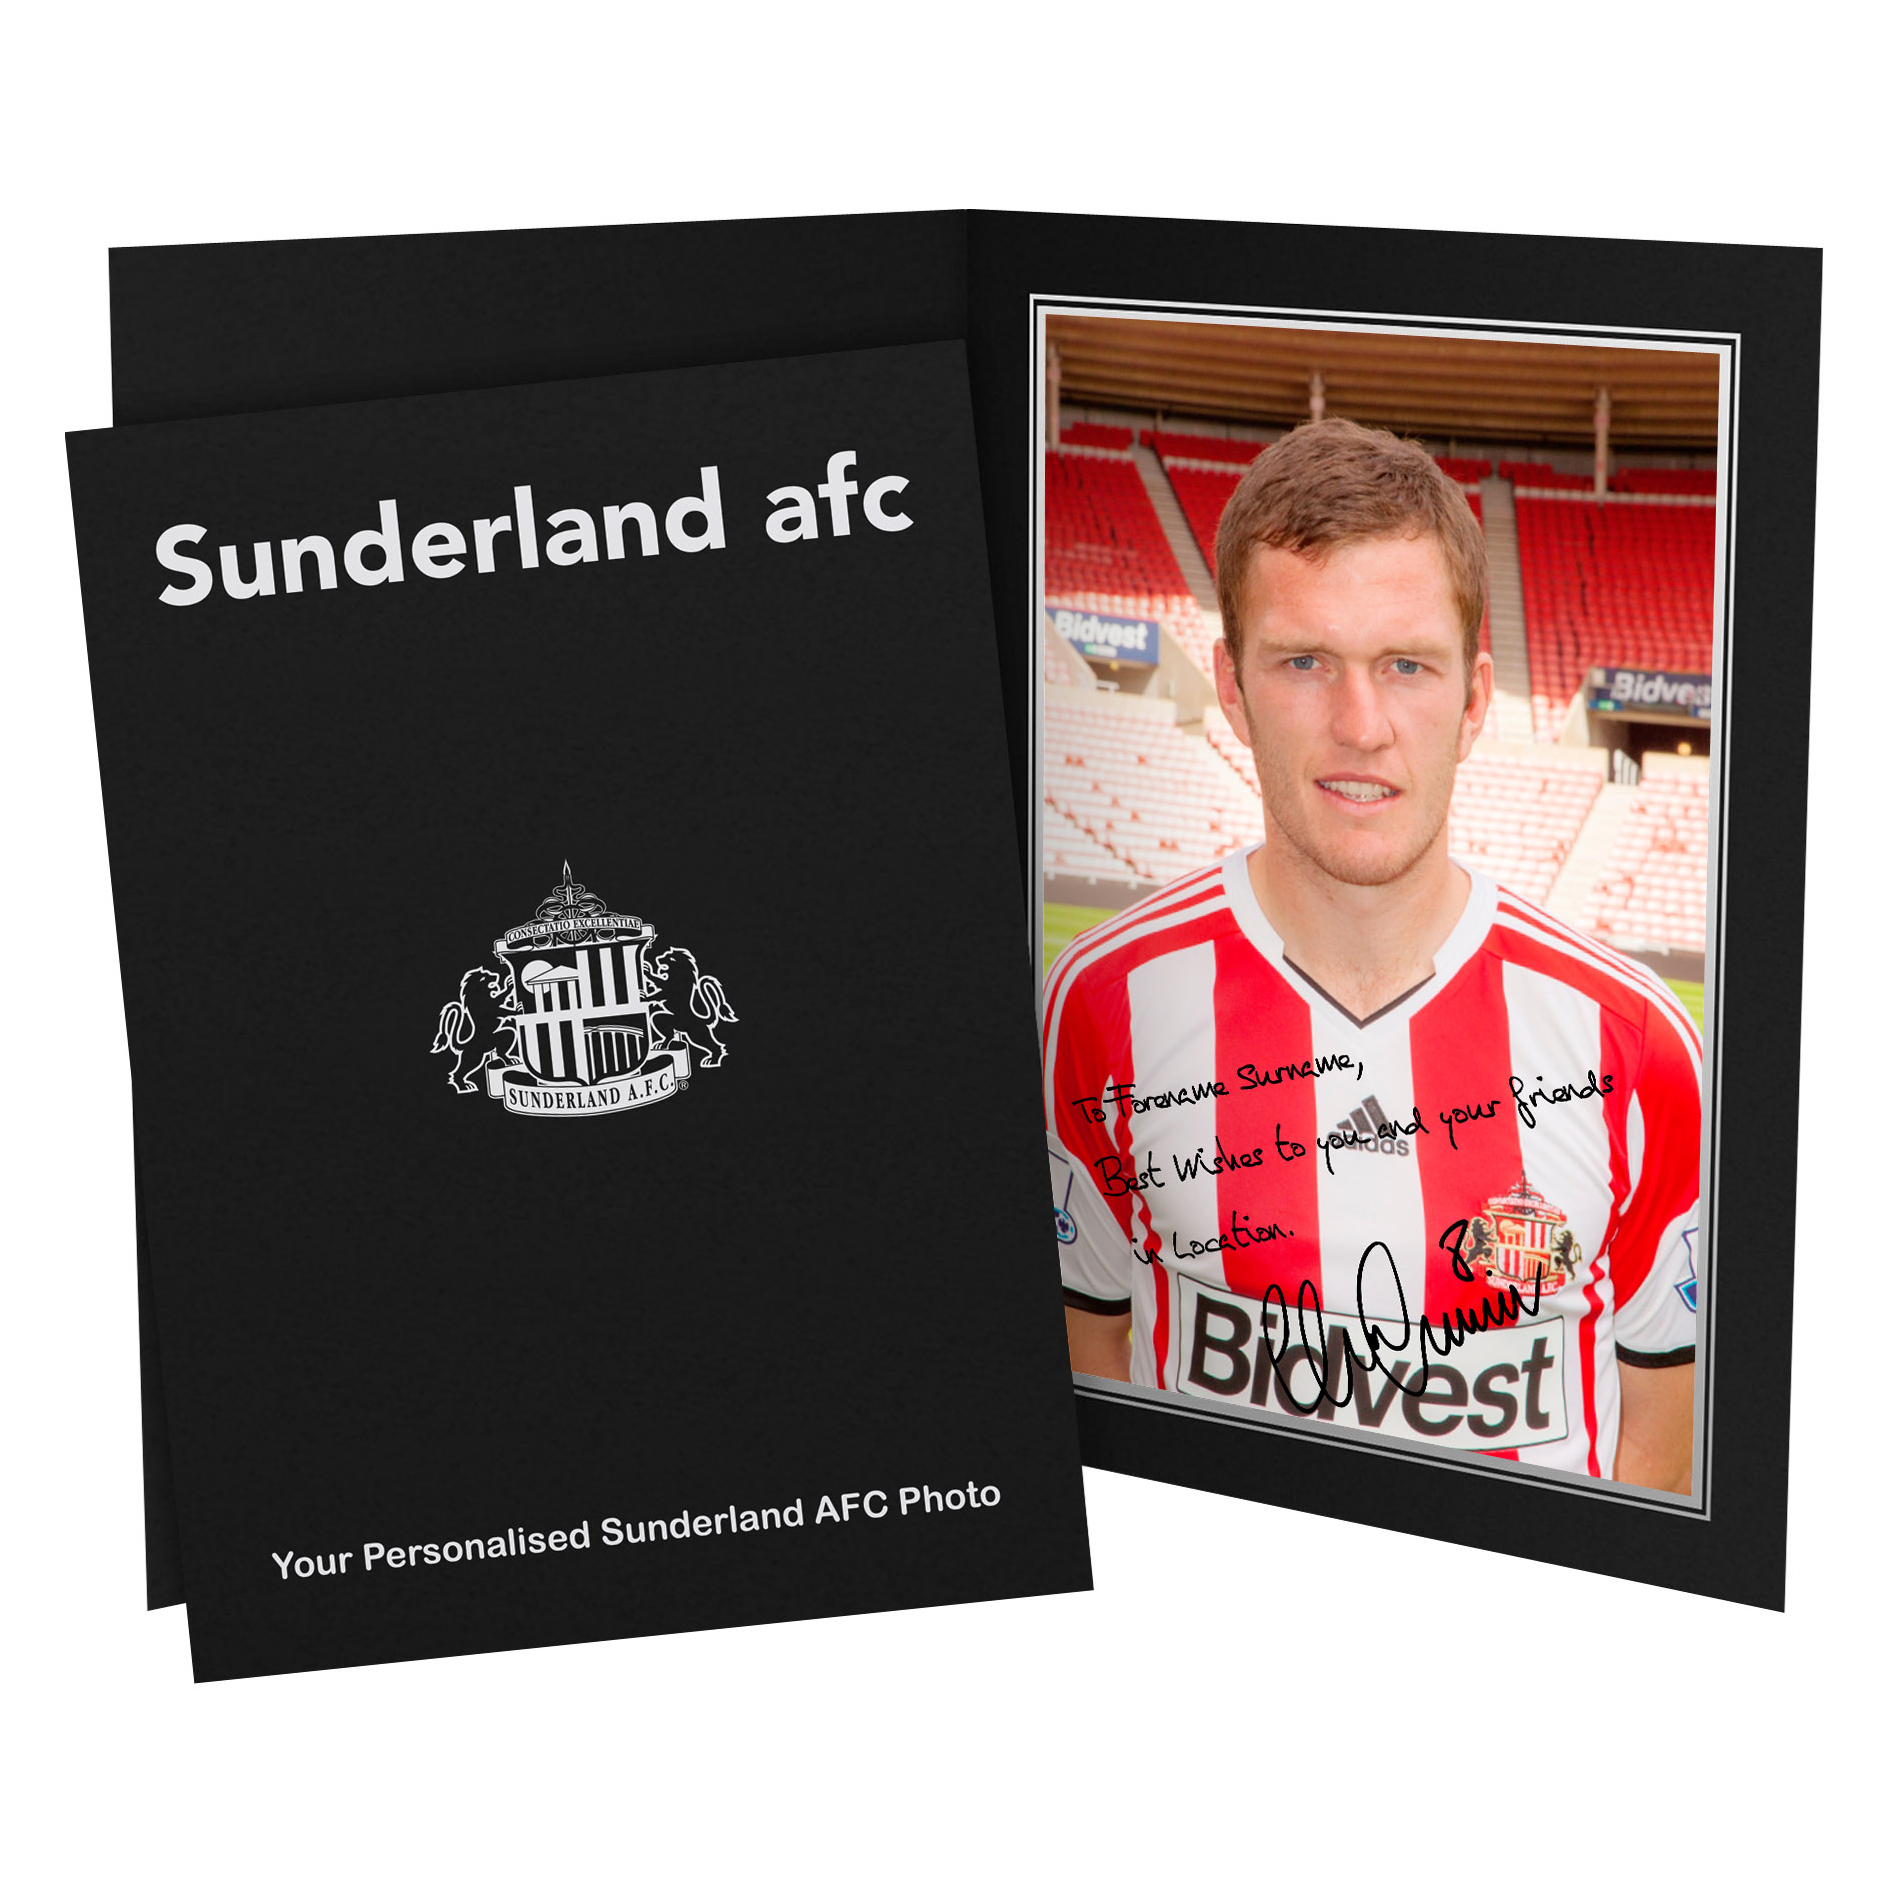 Sunderland Personalised Signature Photo in Presentation Folder - Gardner